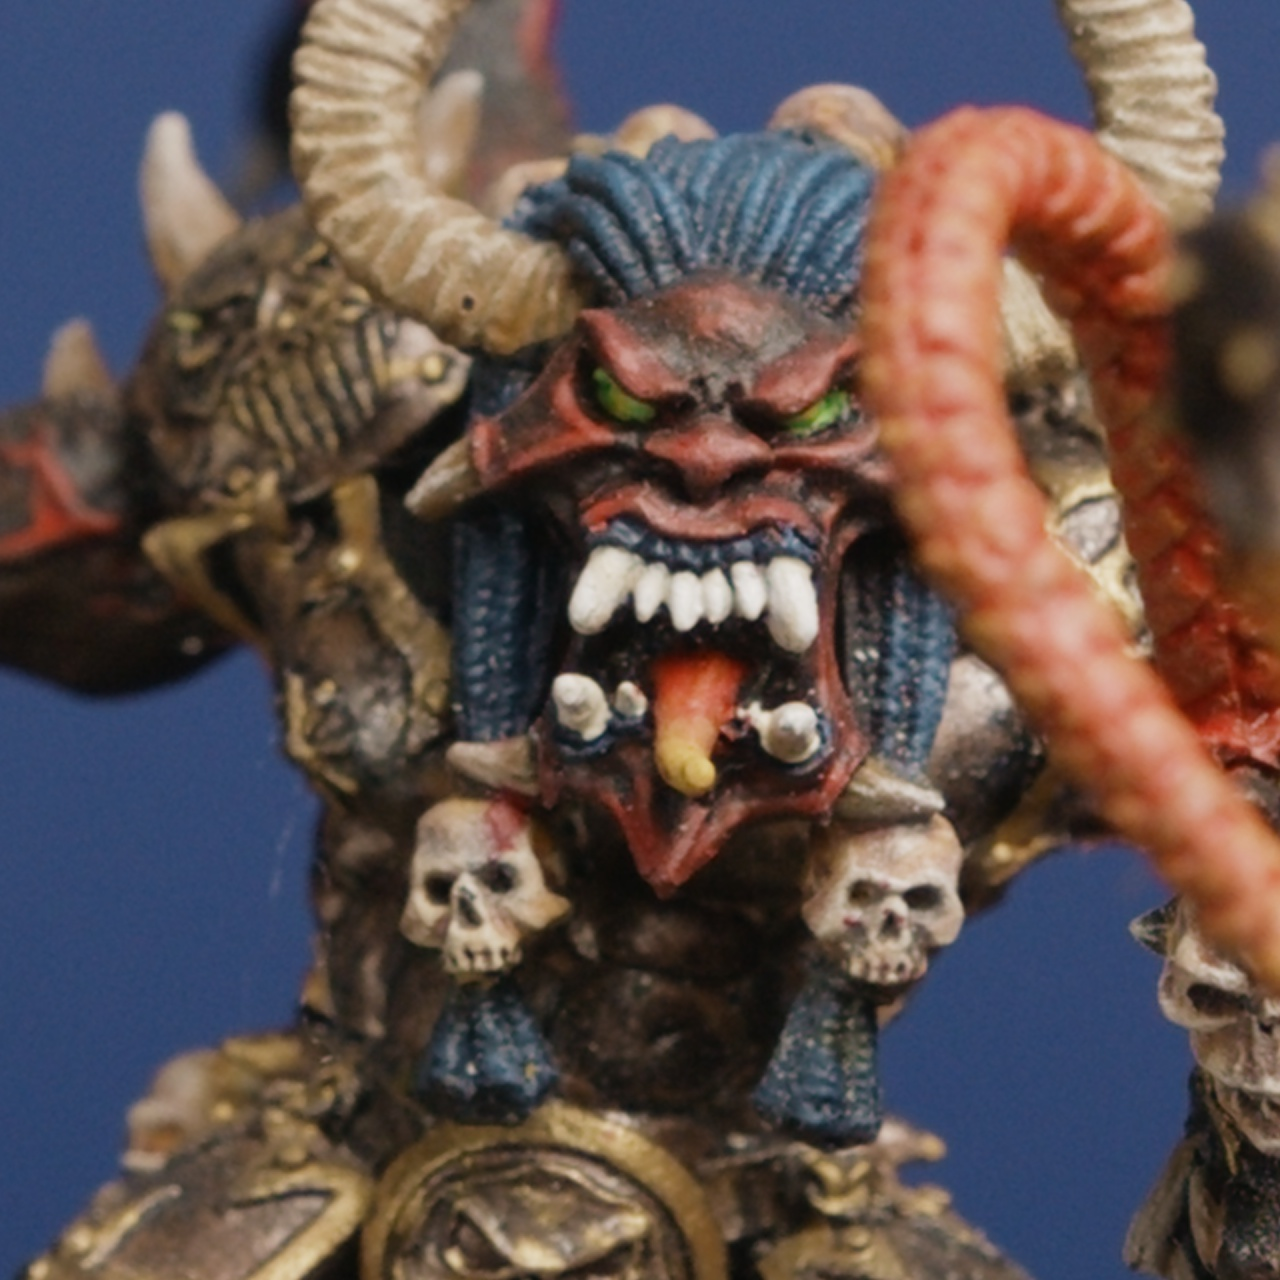 Minatures_Detail2_BRAW.jpg